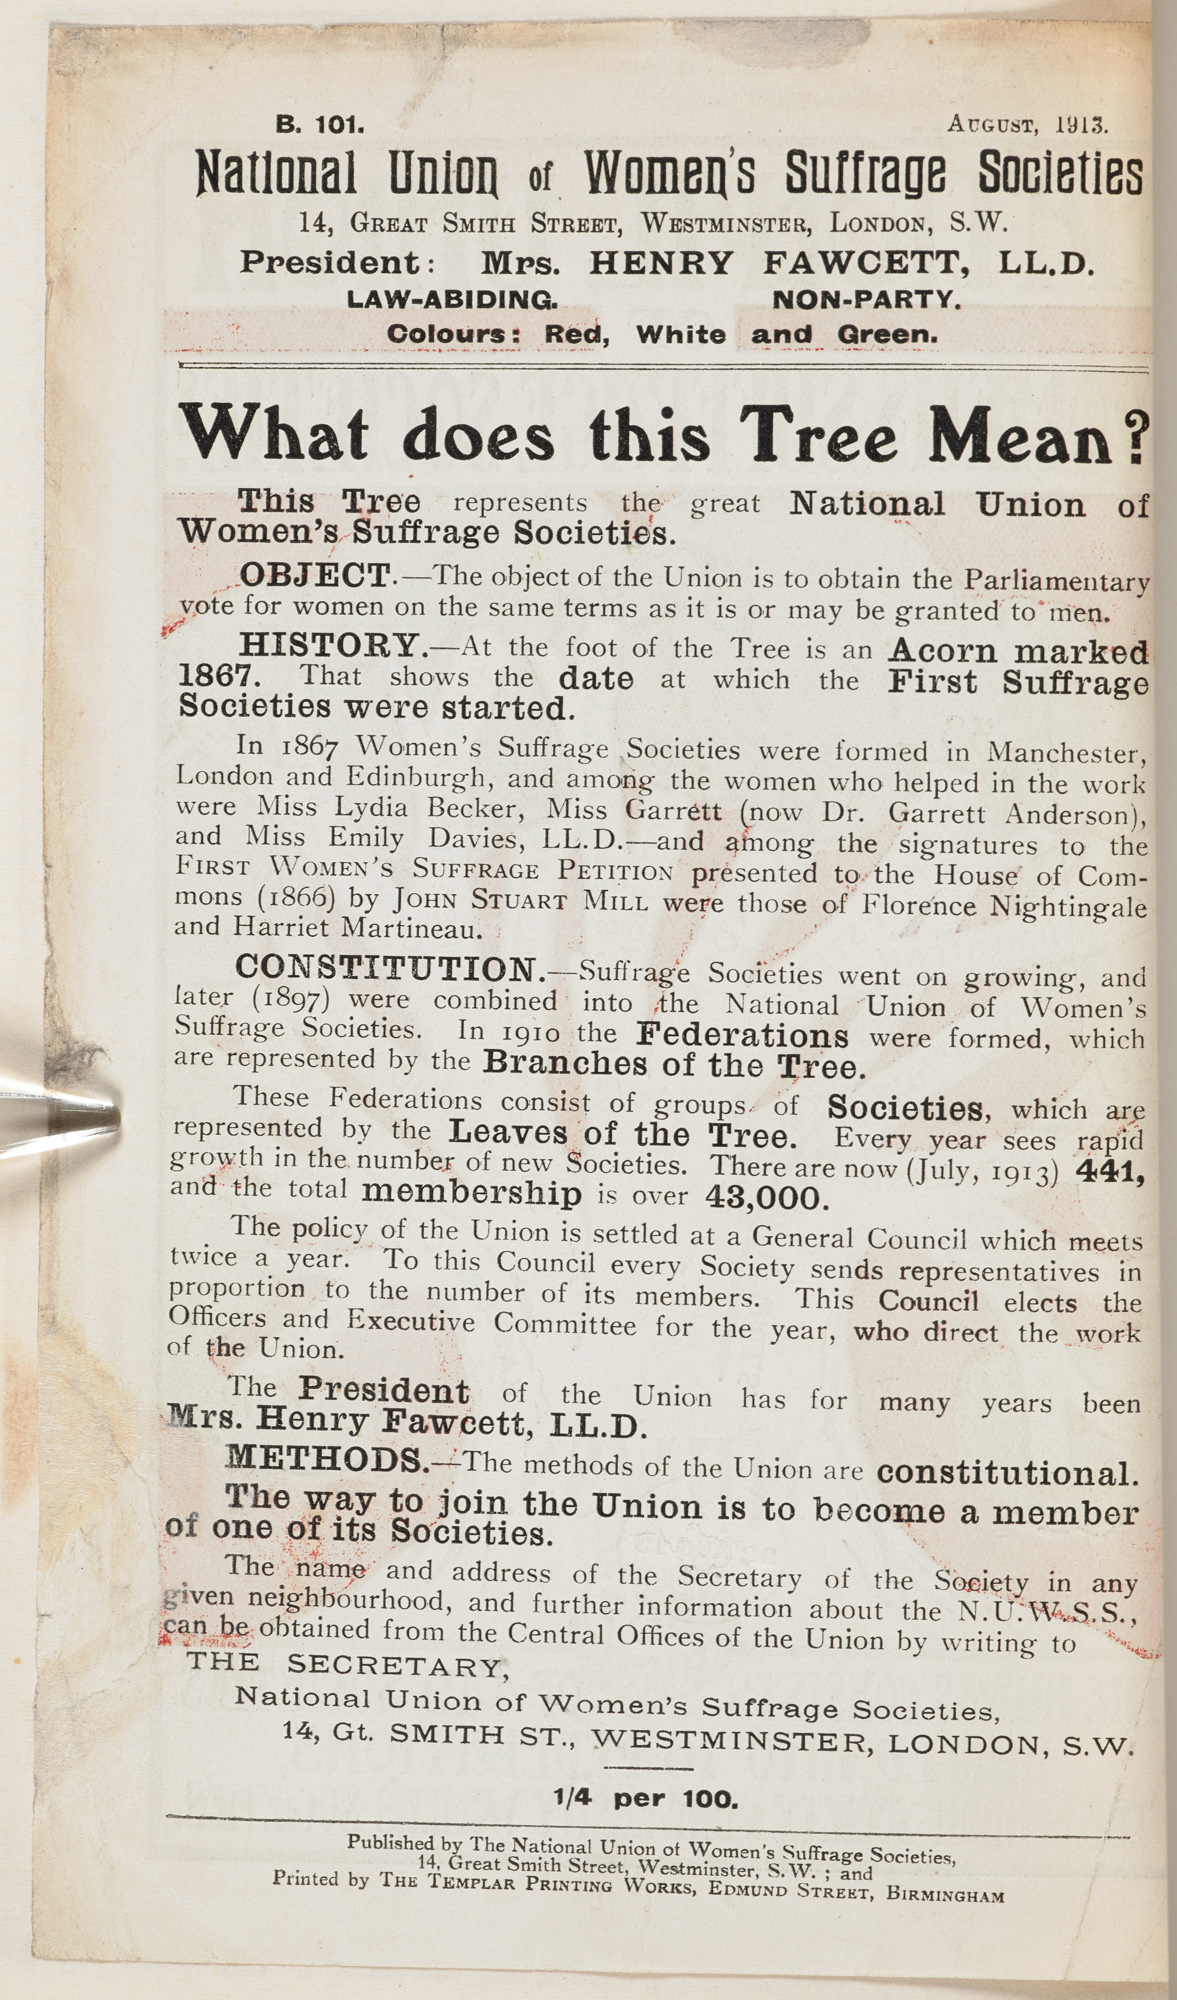 Pamphlet showing the branches of the NUWSS